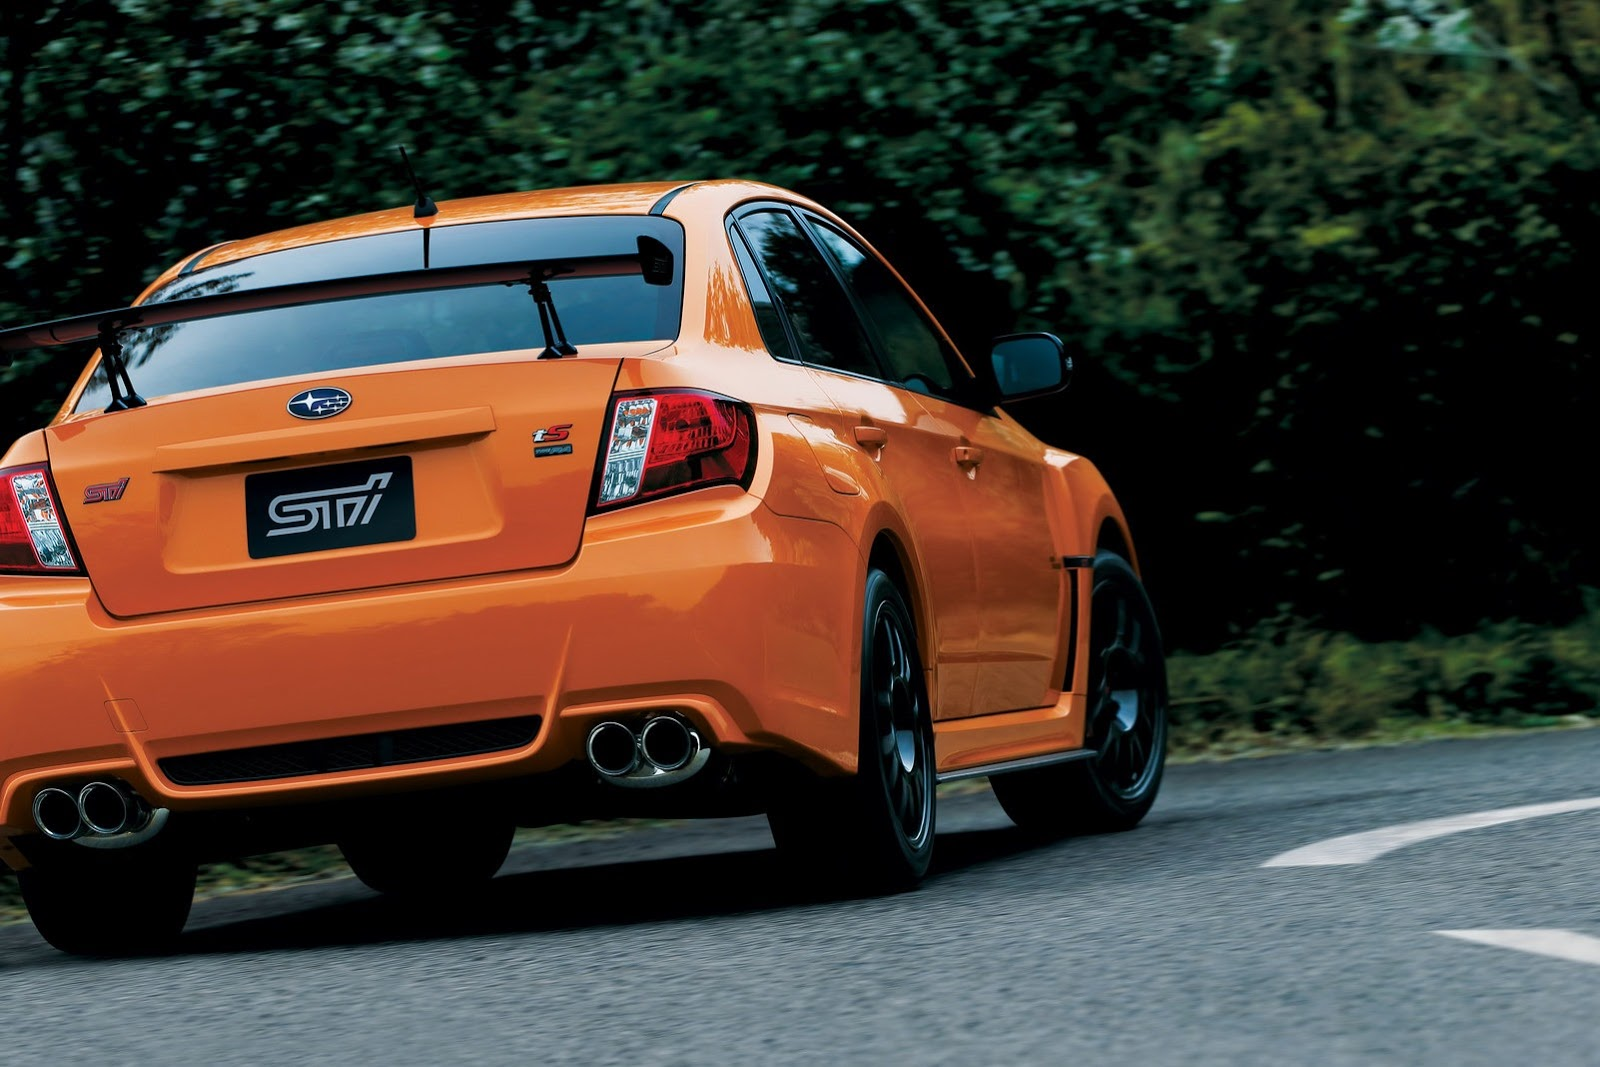 Wrx Performance Parts >> Subaru WRX STI Gets New Japan-Exclusive Special Edition ...